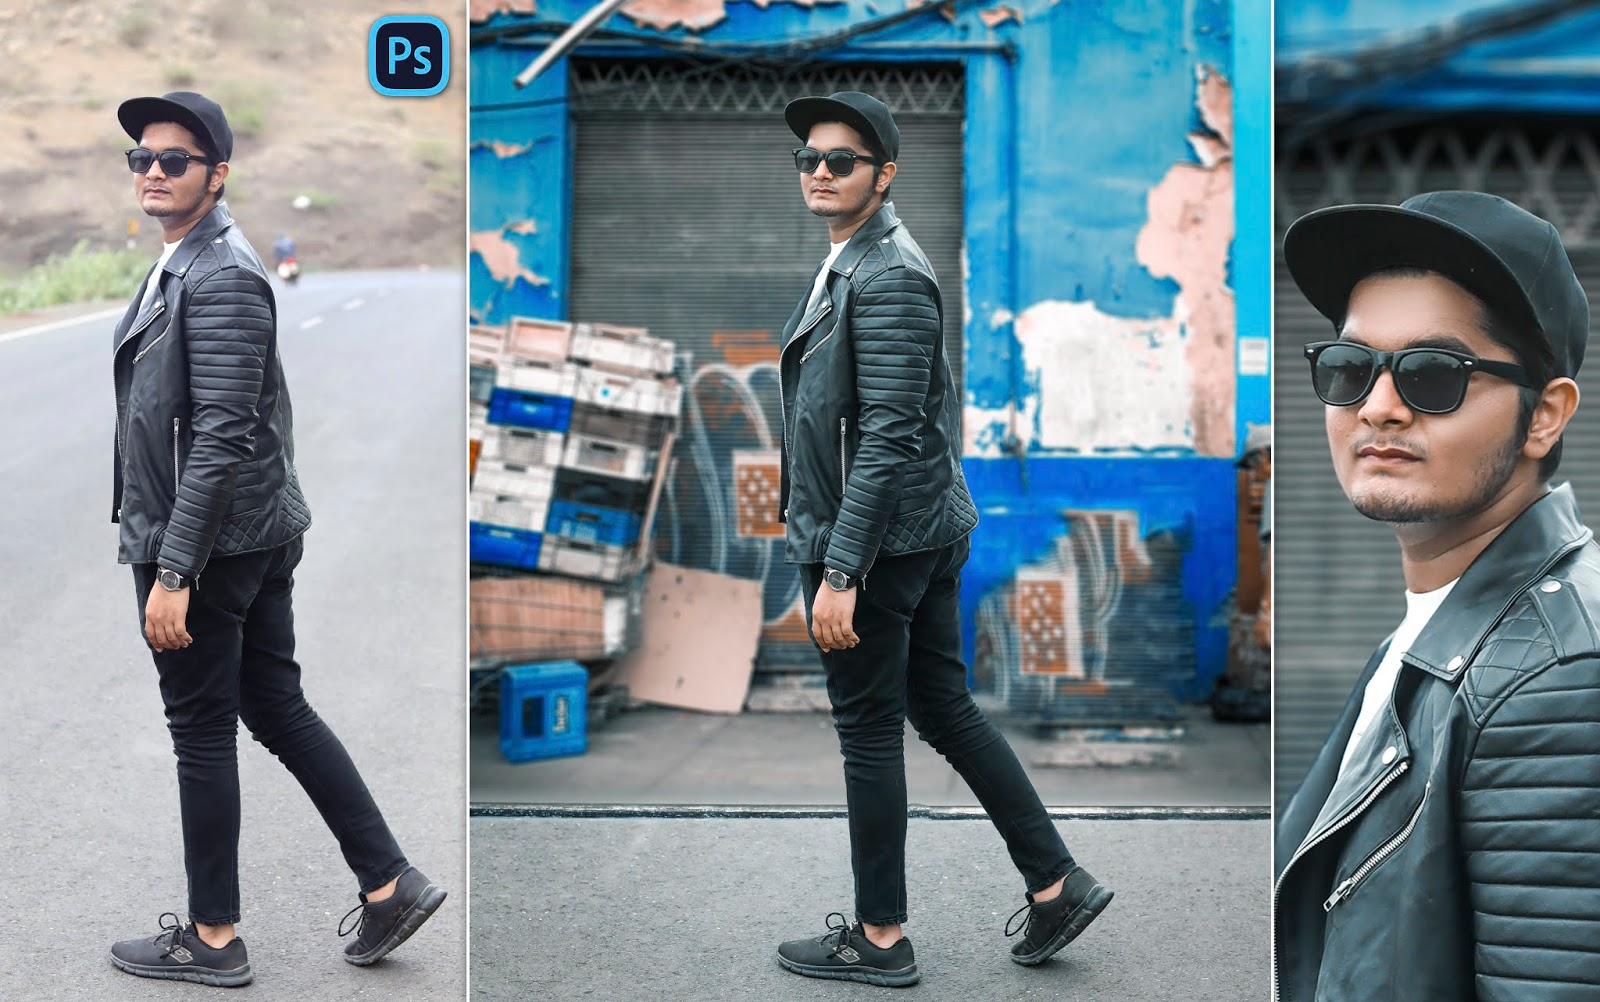 Instagram Creative Stylish Photo Editing in Photoshop | Instagram Style Realistic Photo Manipulation in Photoshop with Cinematic Color Grading